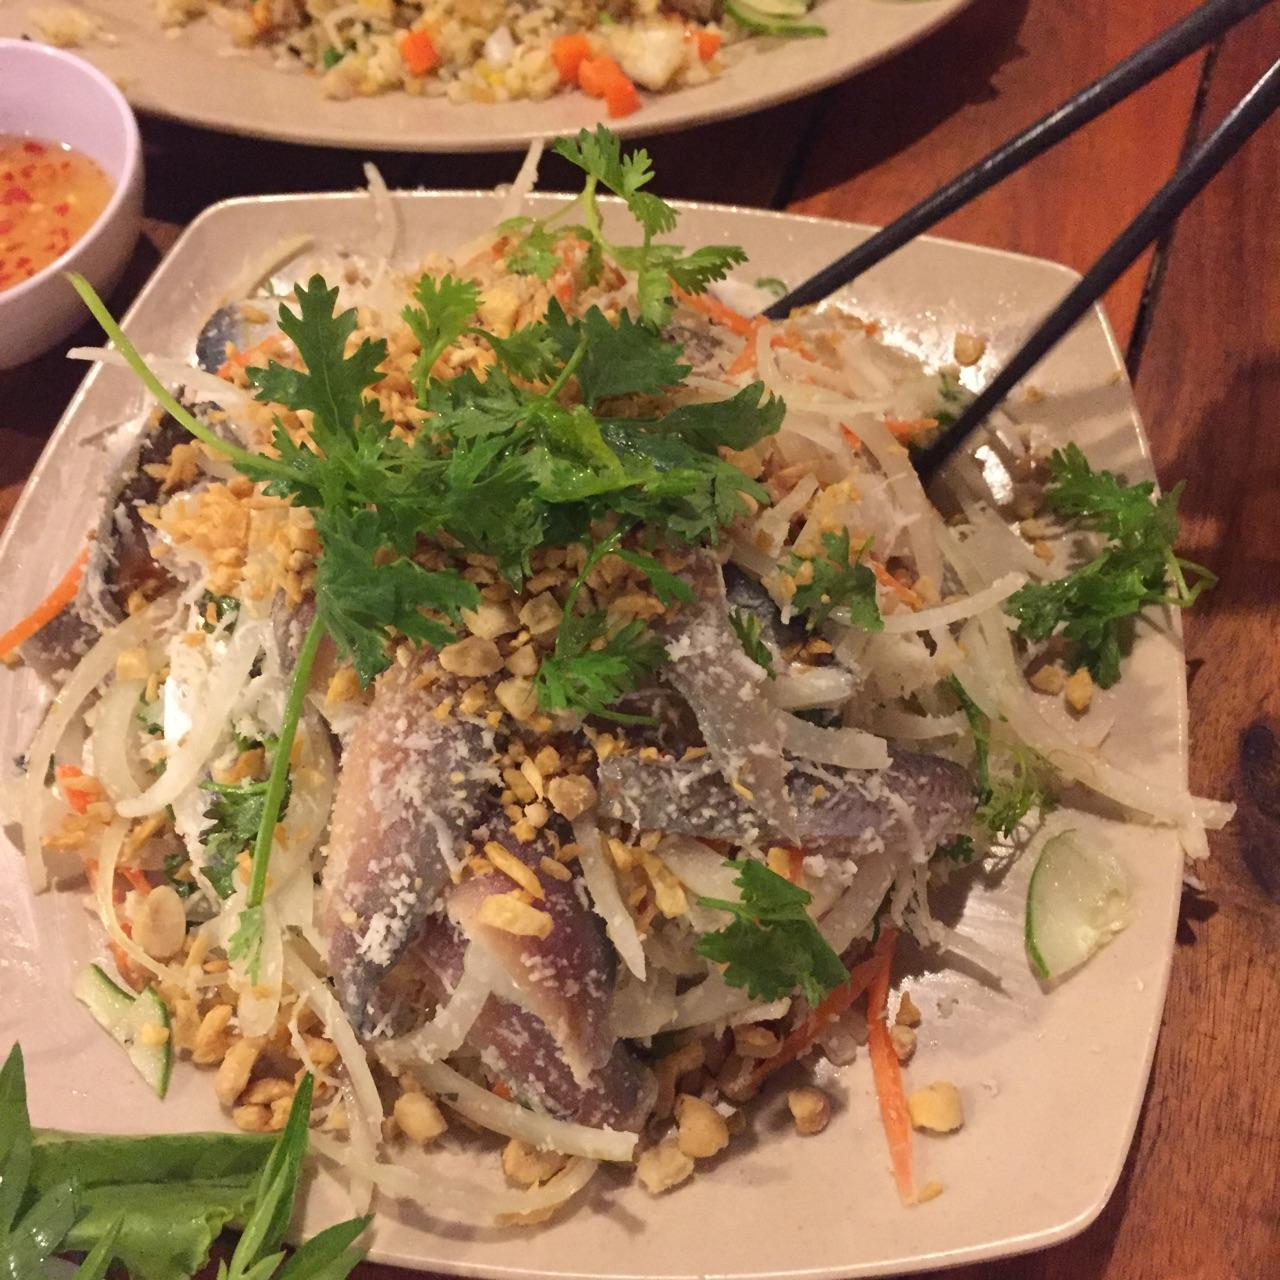 Raw herrige fish salad - Looks scary but taste yummy. Will you try it once?